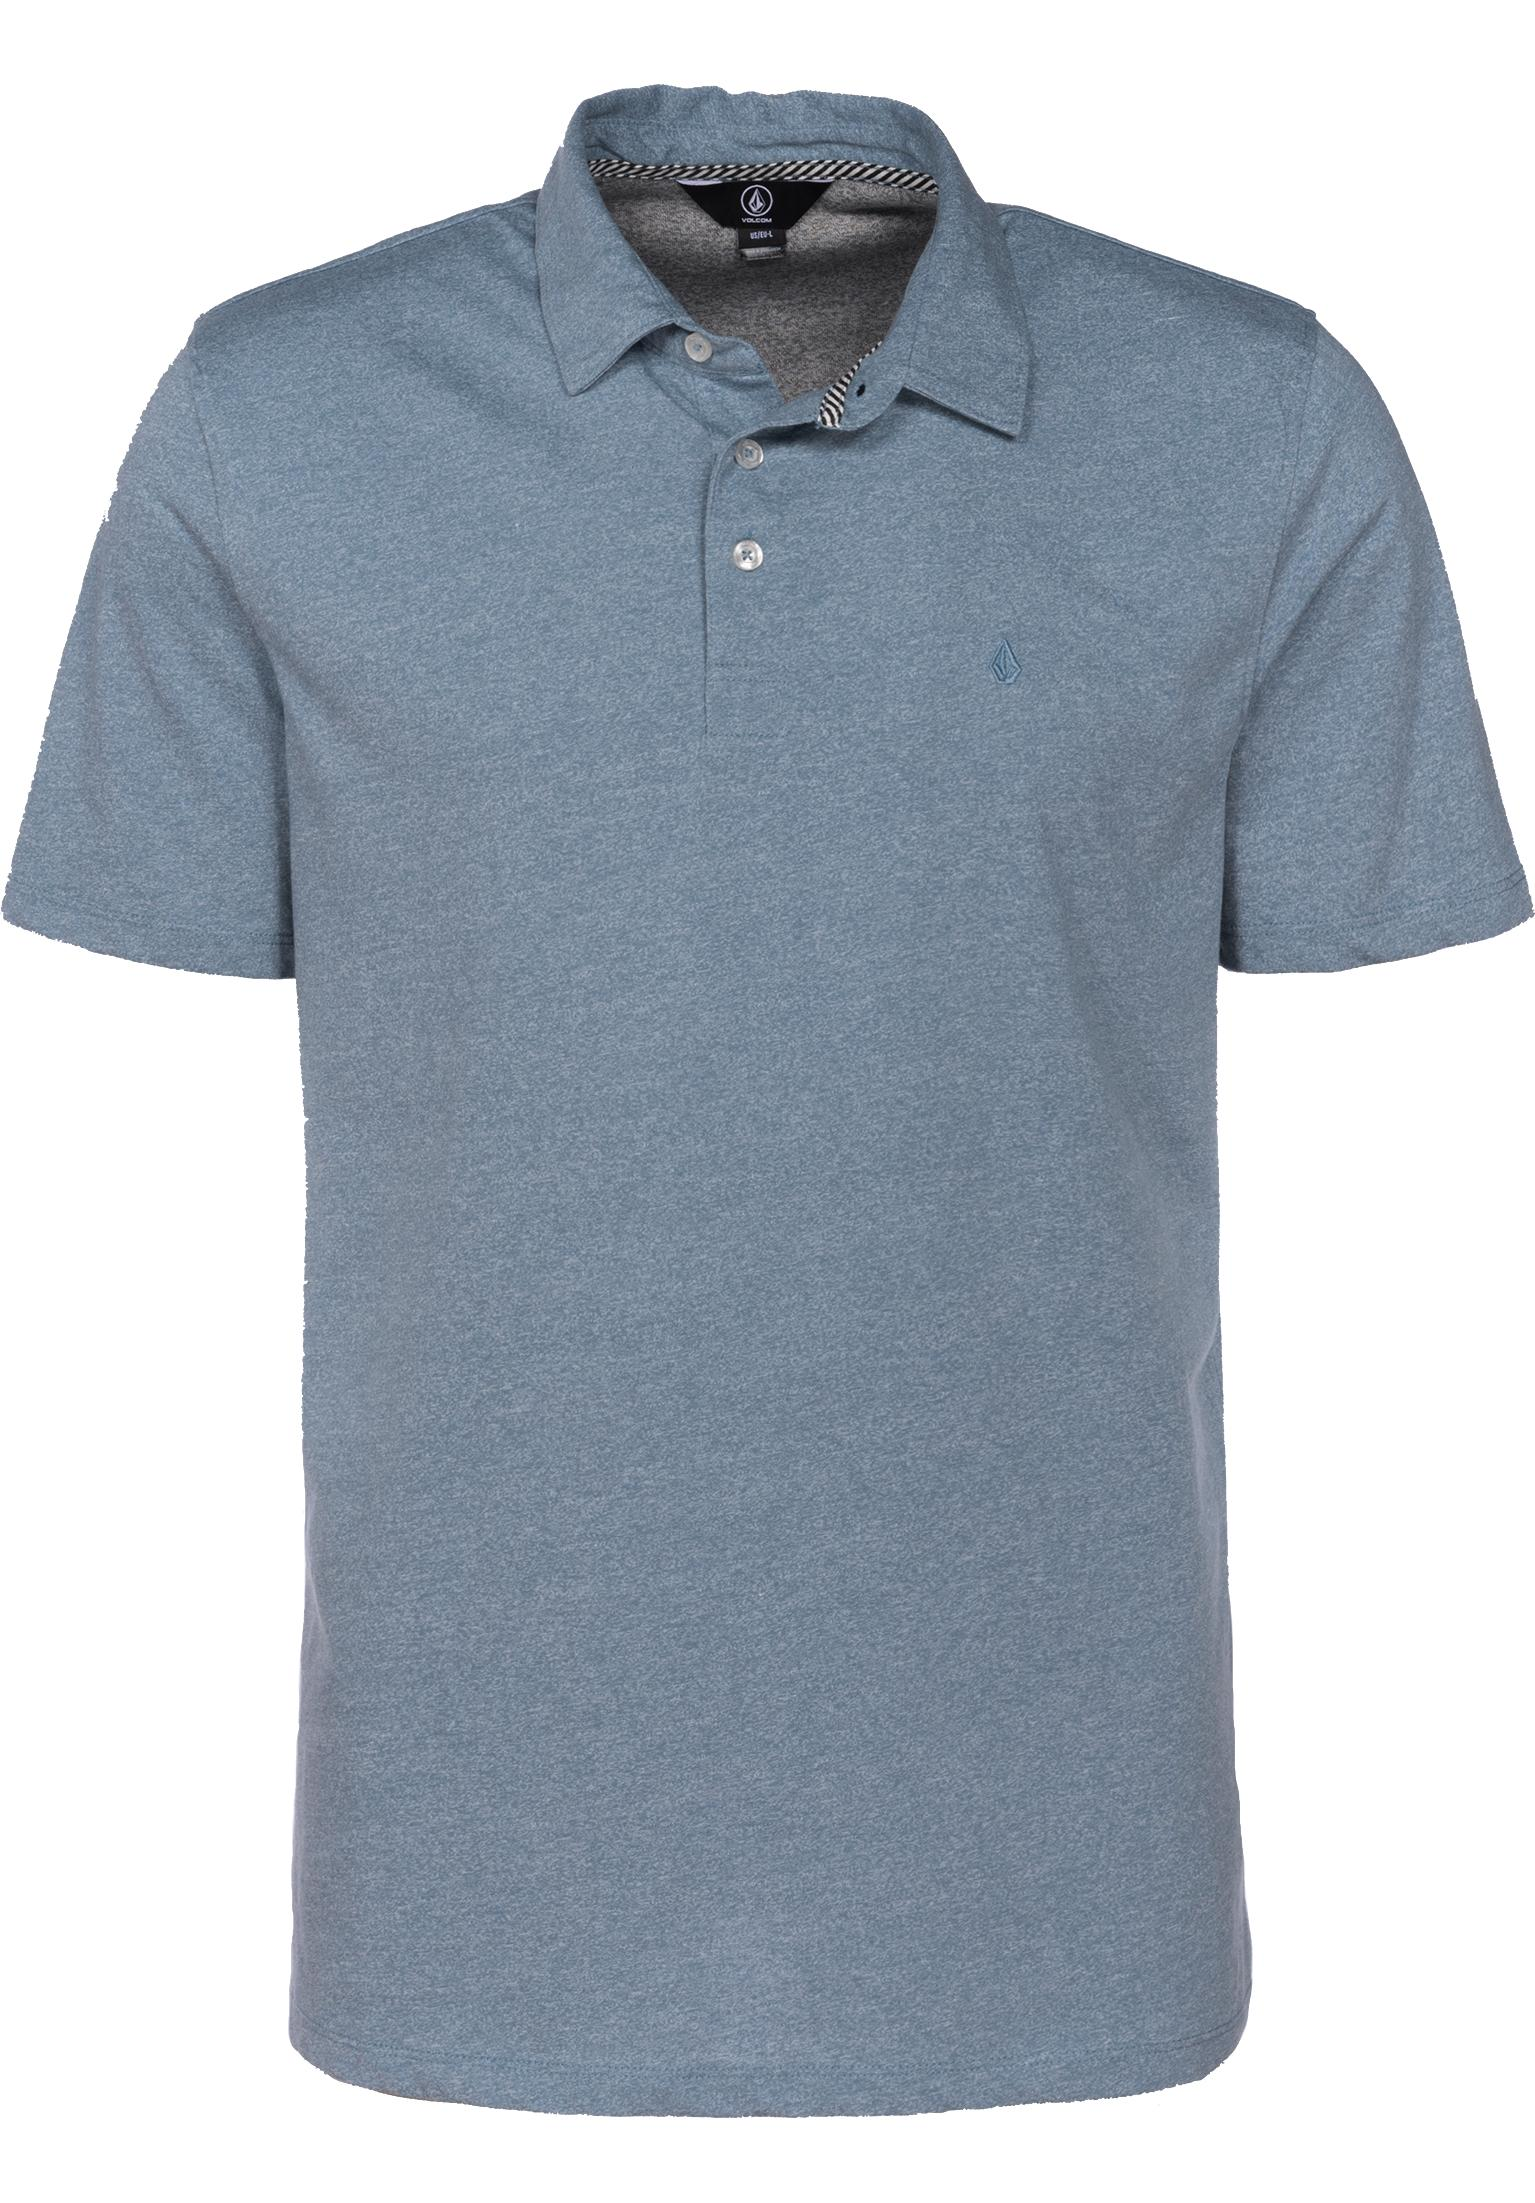 65bfa3ab2177d Polo Shirt Order - Catalyst PSM